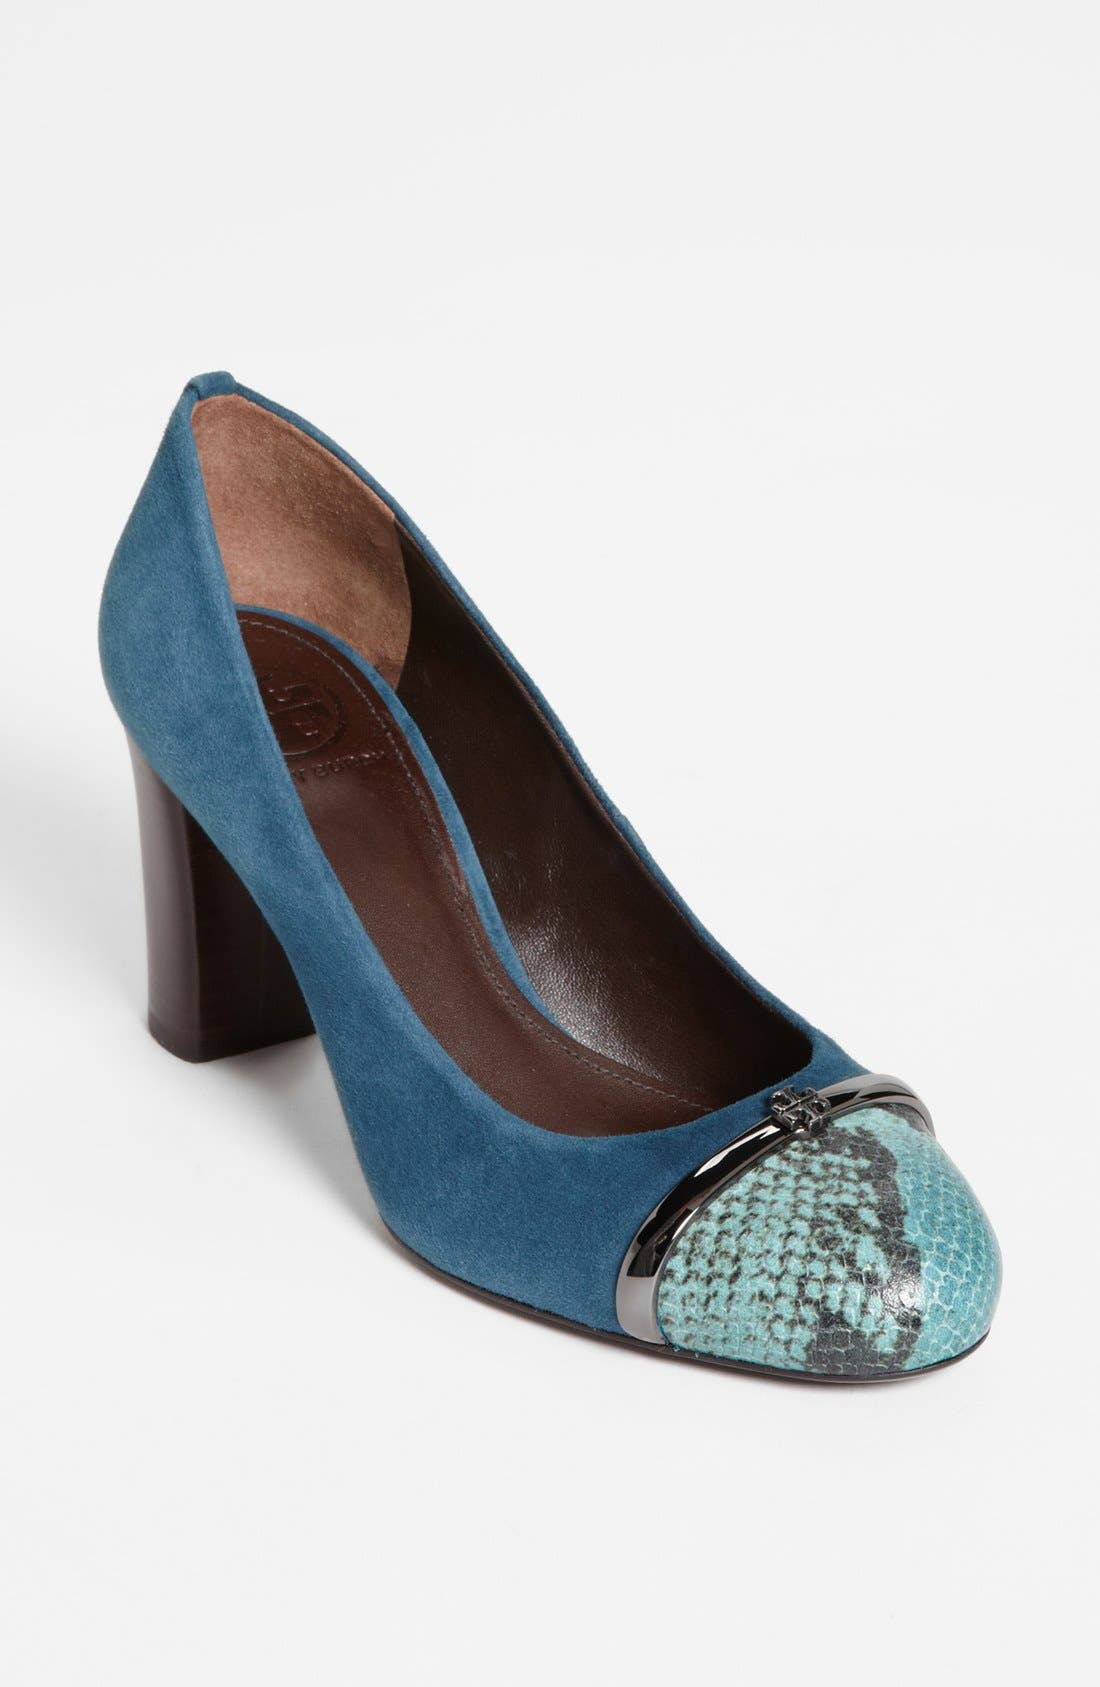 Main Image - Tory Burch 'Pacey' Pump